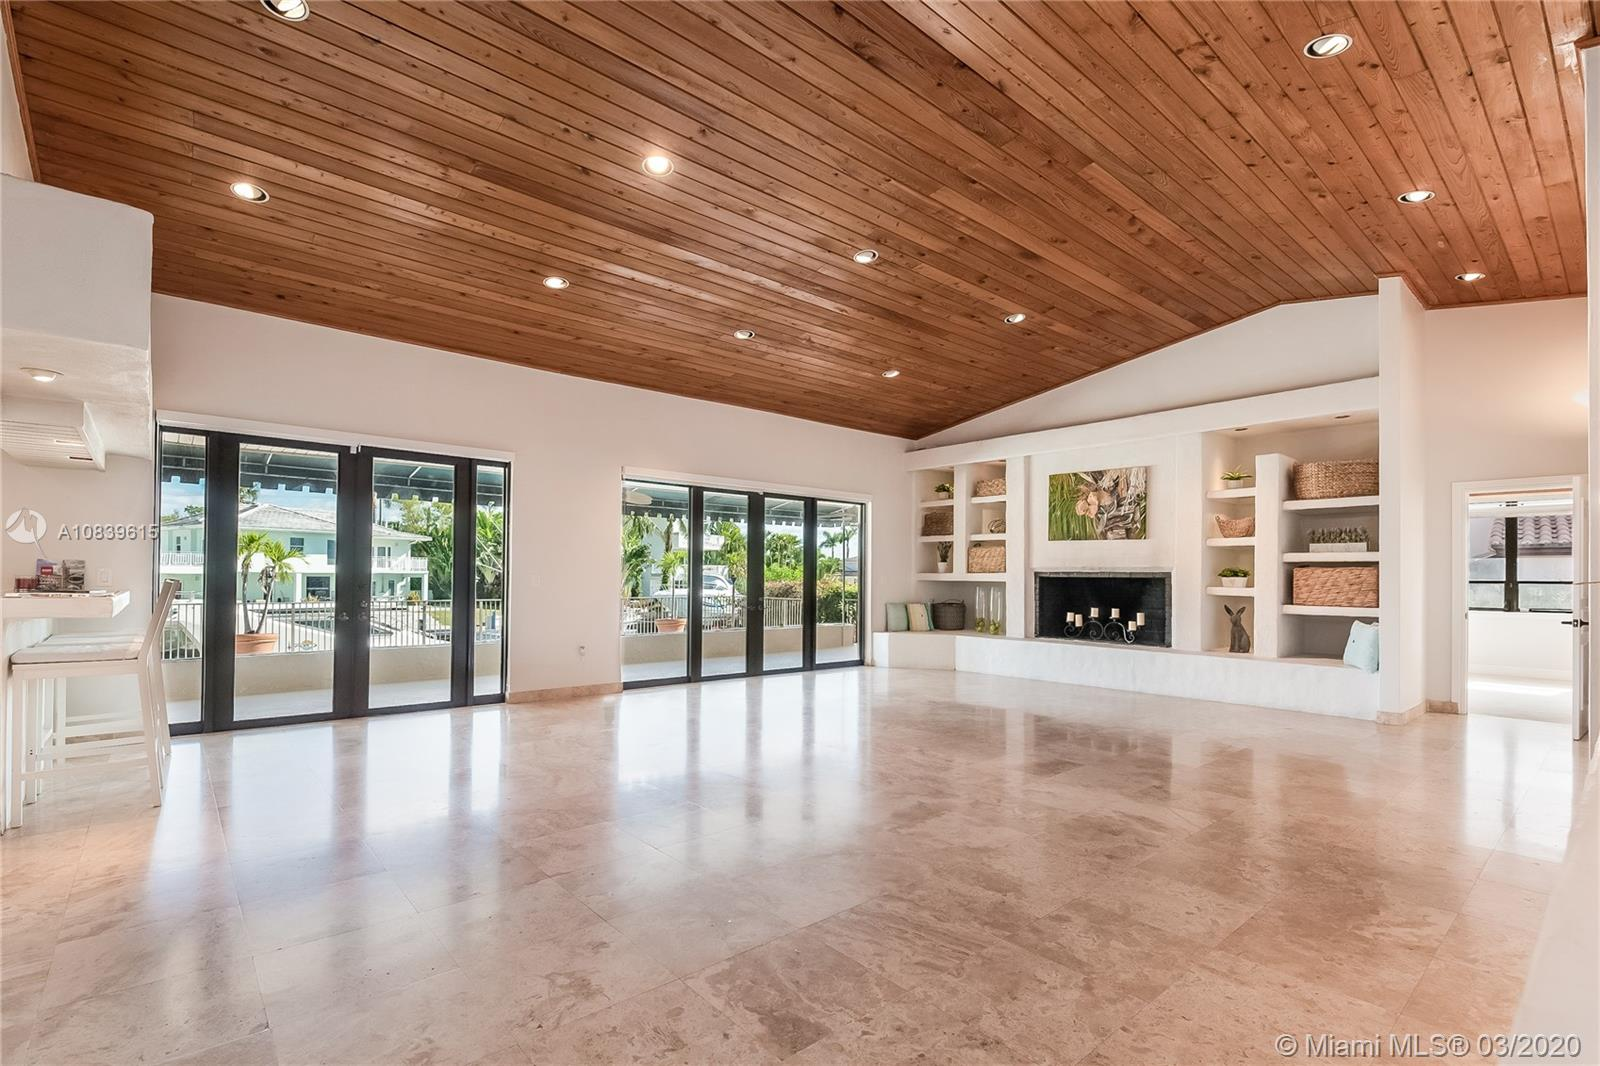 1135 San Pedro Ave, Coral Gables, Florida 33156, 6 Bedrooms Bedrooms, ,5 BathroomsBathrooms,Residential,For Sale,1135 San Pedro Ave,A10839615